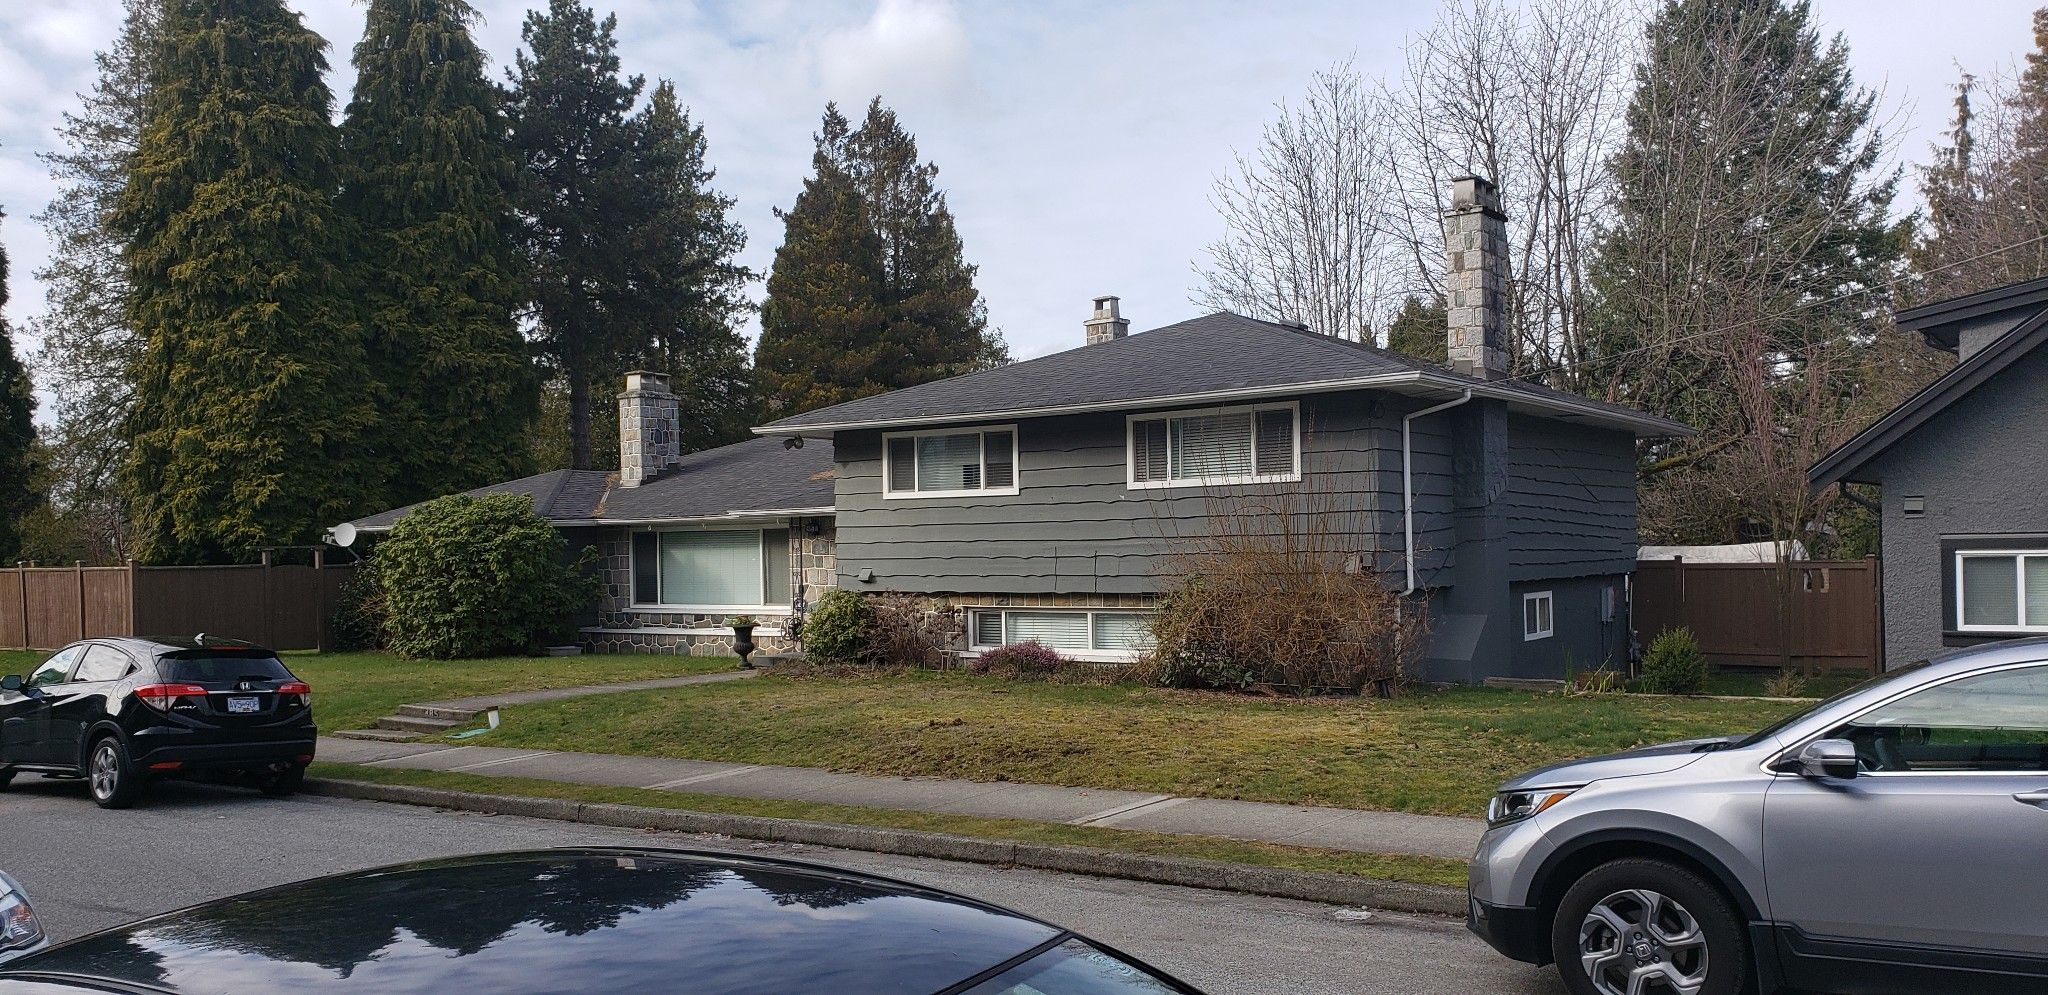 Main Photo: 485 West 28 Ave in Vancouver: Cambie Land for sale (Vancouver West)